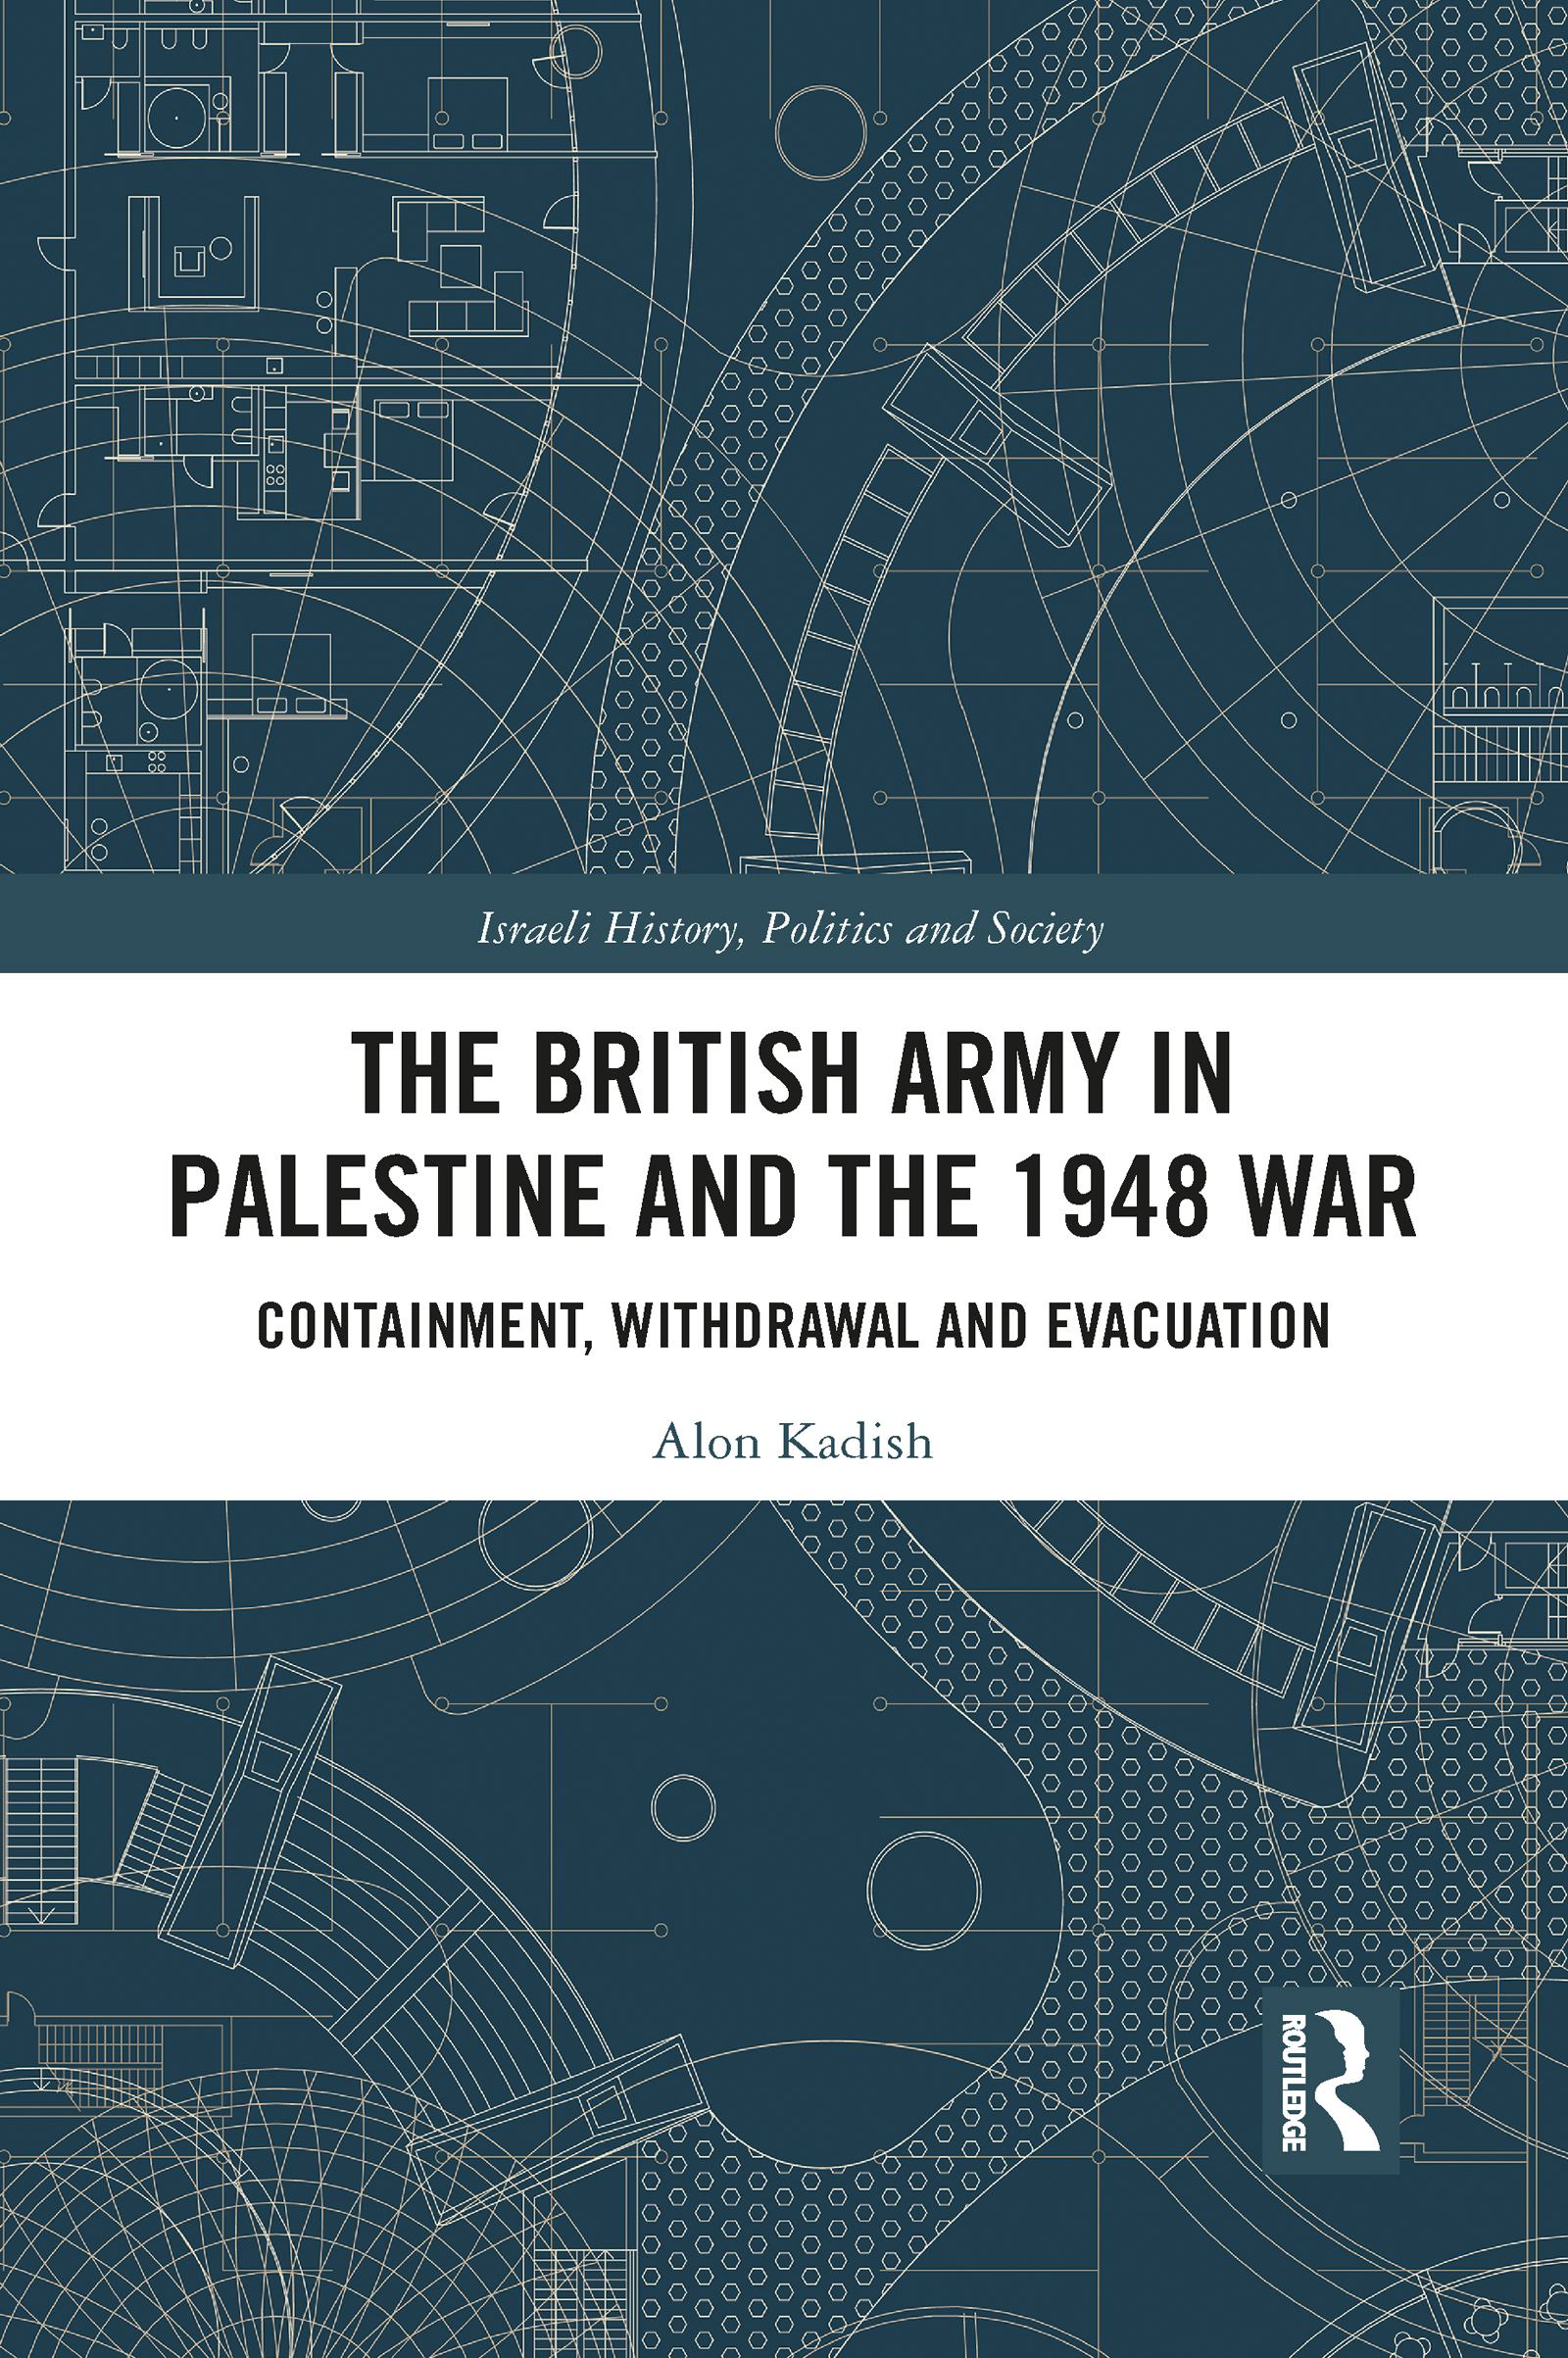 The British Army in Palestine and the 1948 War